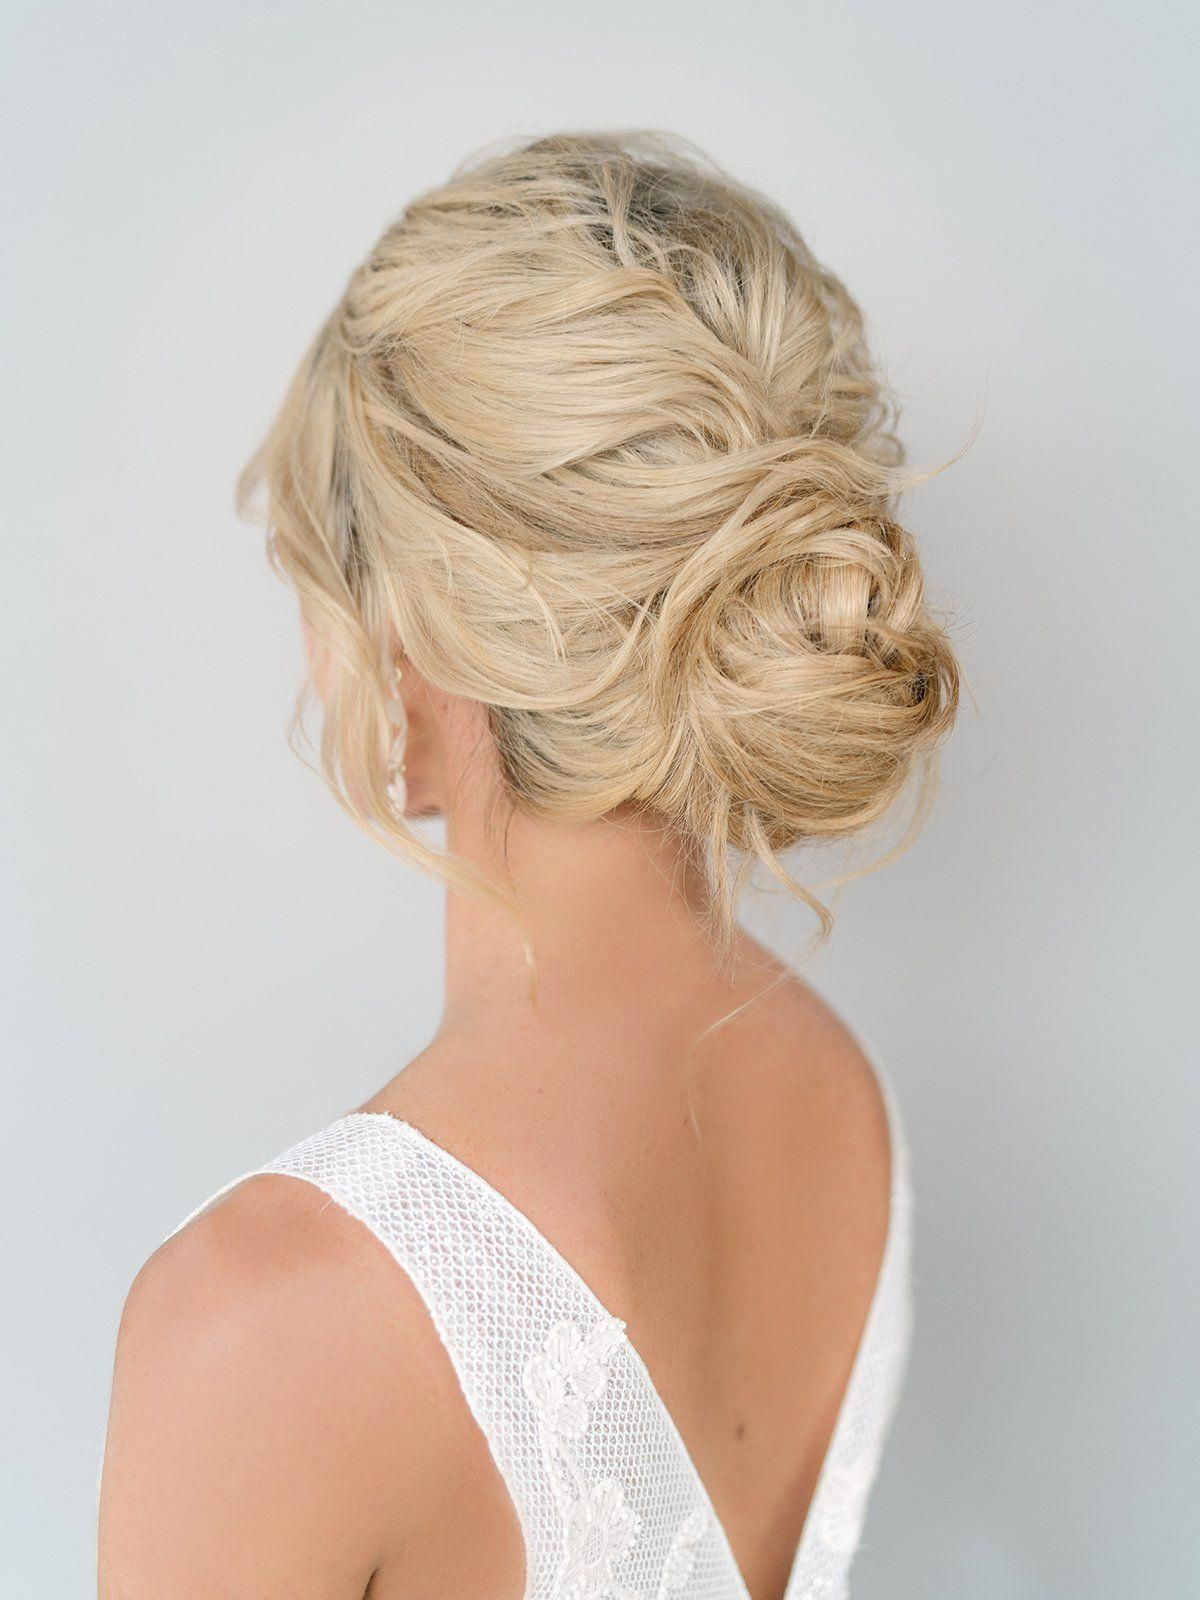 Loose, Braided Bun - Bridal Updo / Wedding Hairstyles - Beach Wedding Fashion // Venue: Balmoral Crystal Clear Lagoon | Photo: Stephania Campos | Videography: Meant To Be Films | Ceremony & Reception Dresses, Veil: Belle Âme Bridal | Makeup & Hair: Adorne Artistry // #weddinghair #bridal #updo #bun #hairstyle #fashion #weddinglook #bridalhair #hairstyles #bride #weddingtheme #blondehair #2020 #trending #hairupdos # loose Braids makeup #loosebraids